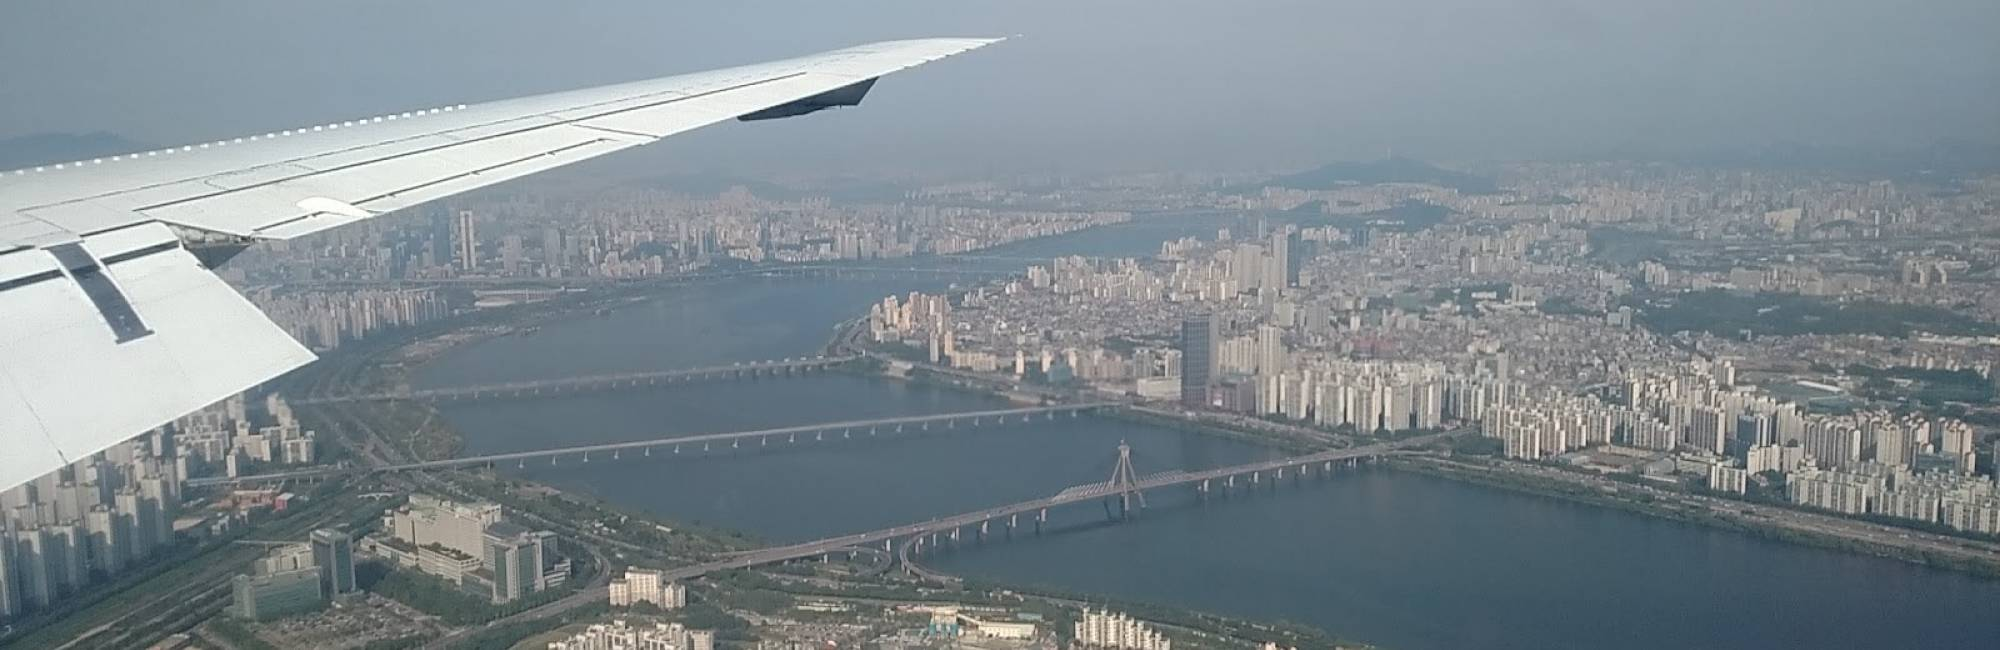 Seoul, seen by air, hazy and with airplane wing in frame